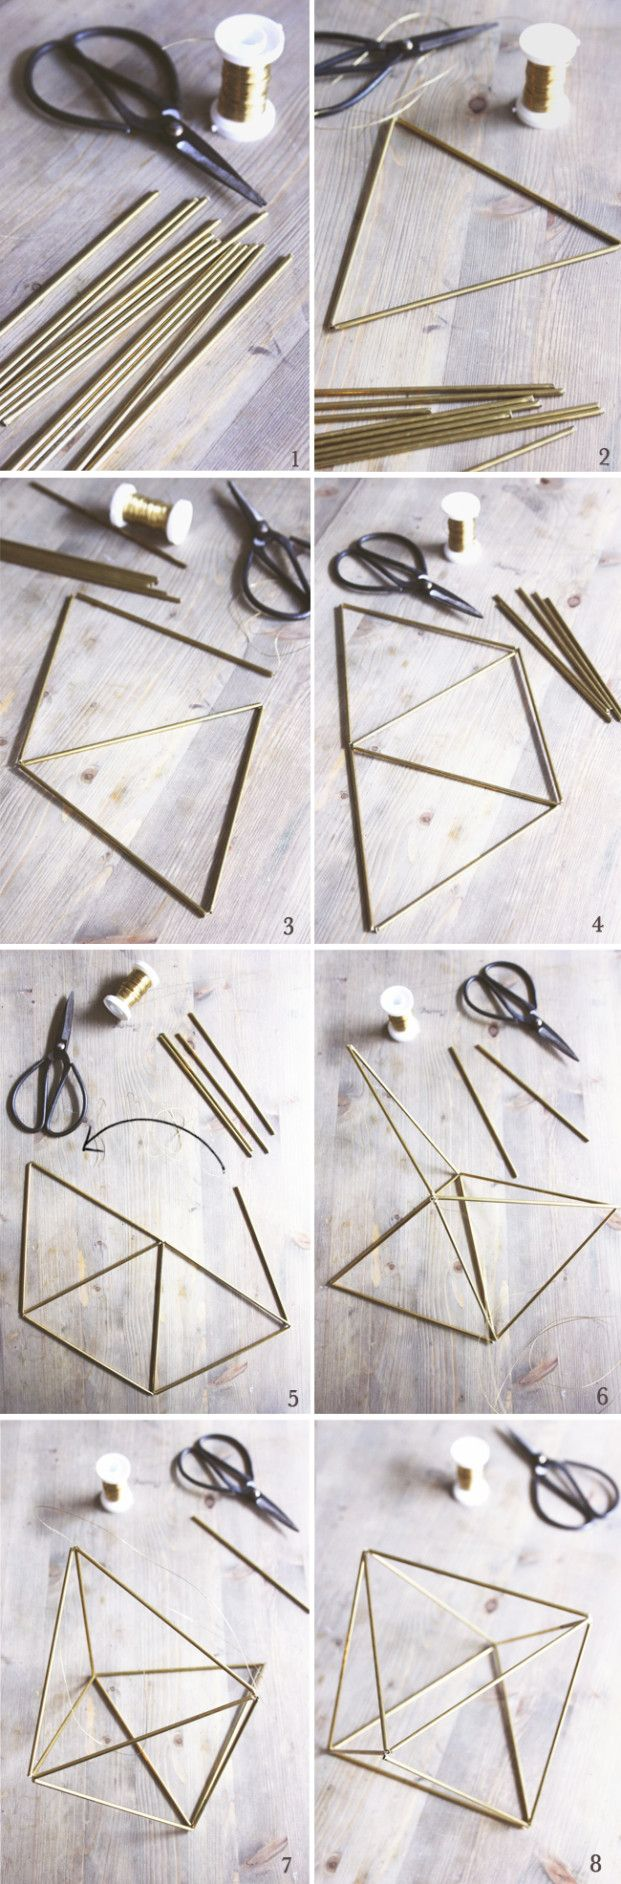 DIY Himmeli #tutorial #decor #howto